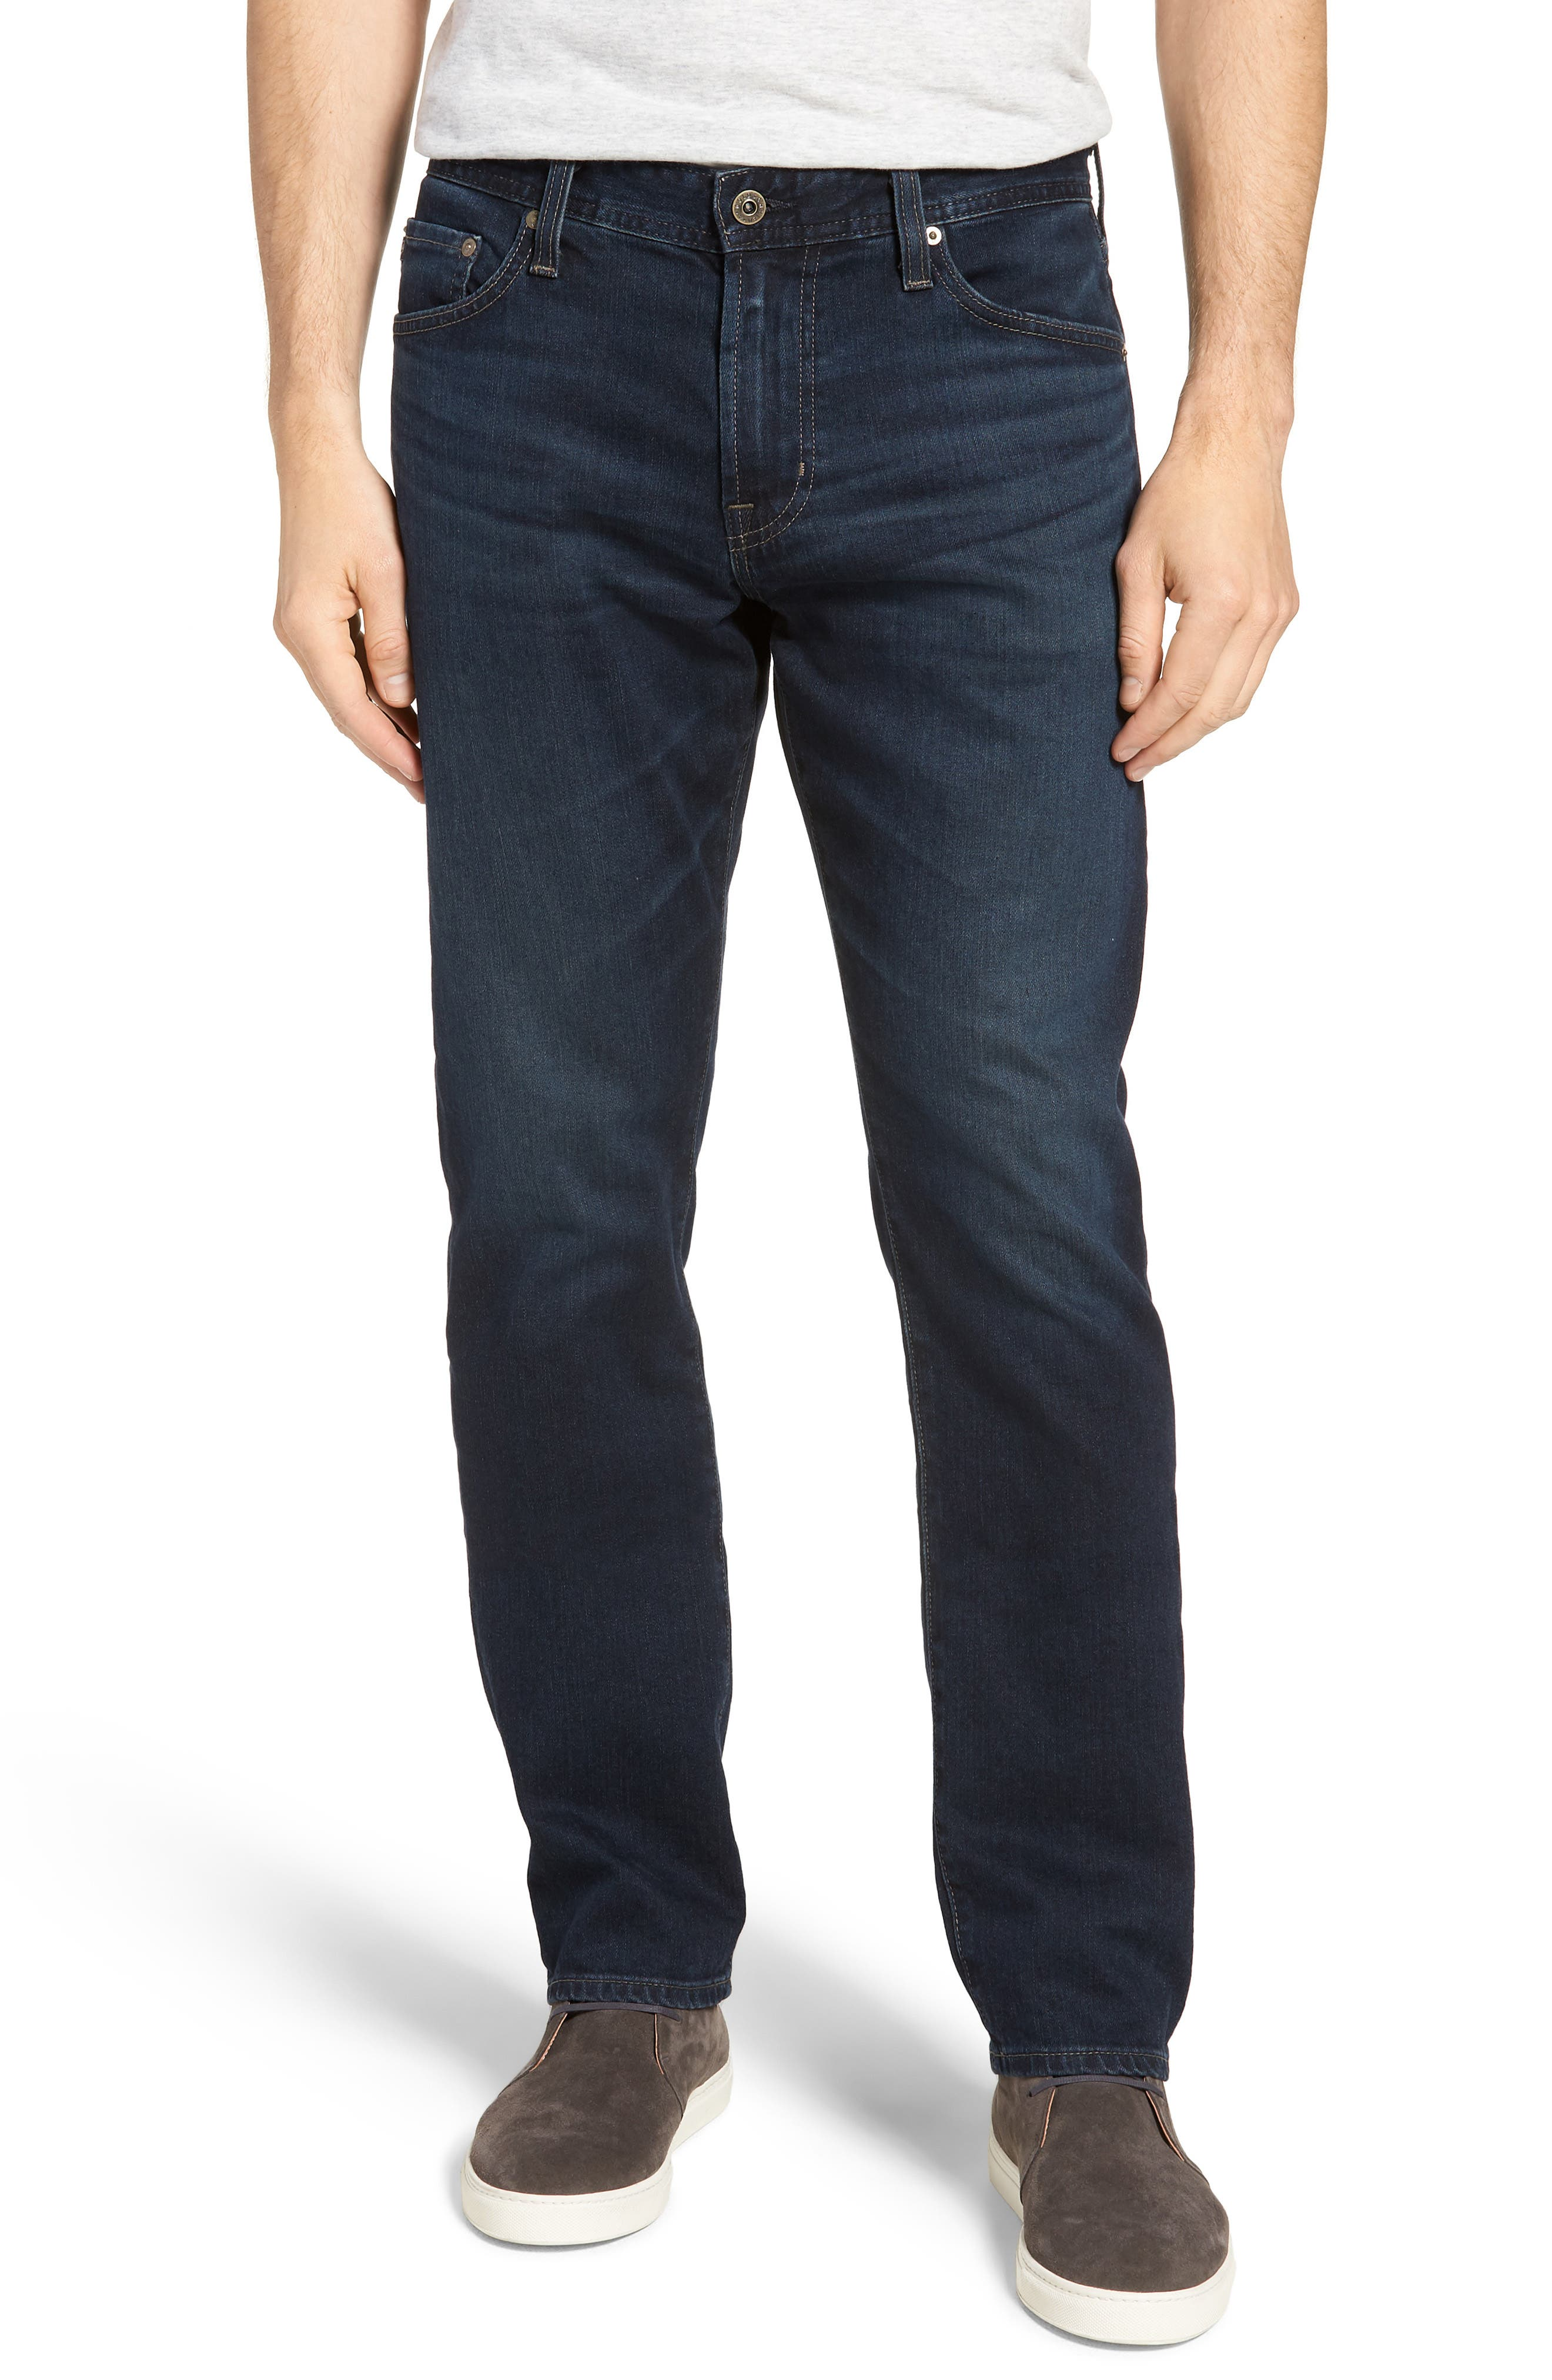 Everett Slim Straight Fit Jeans,                         Main,                         color, SHADOW MOUNTAIN